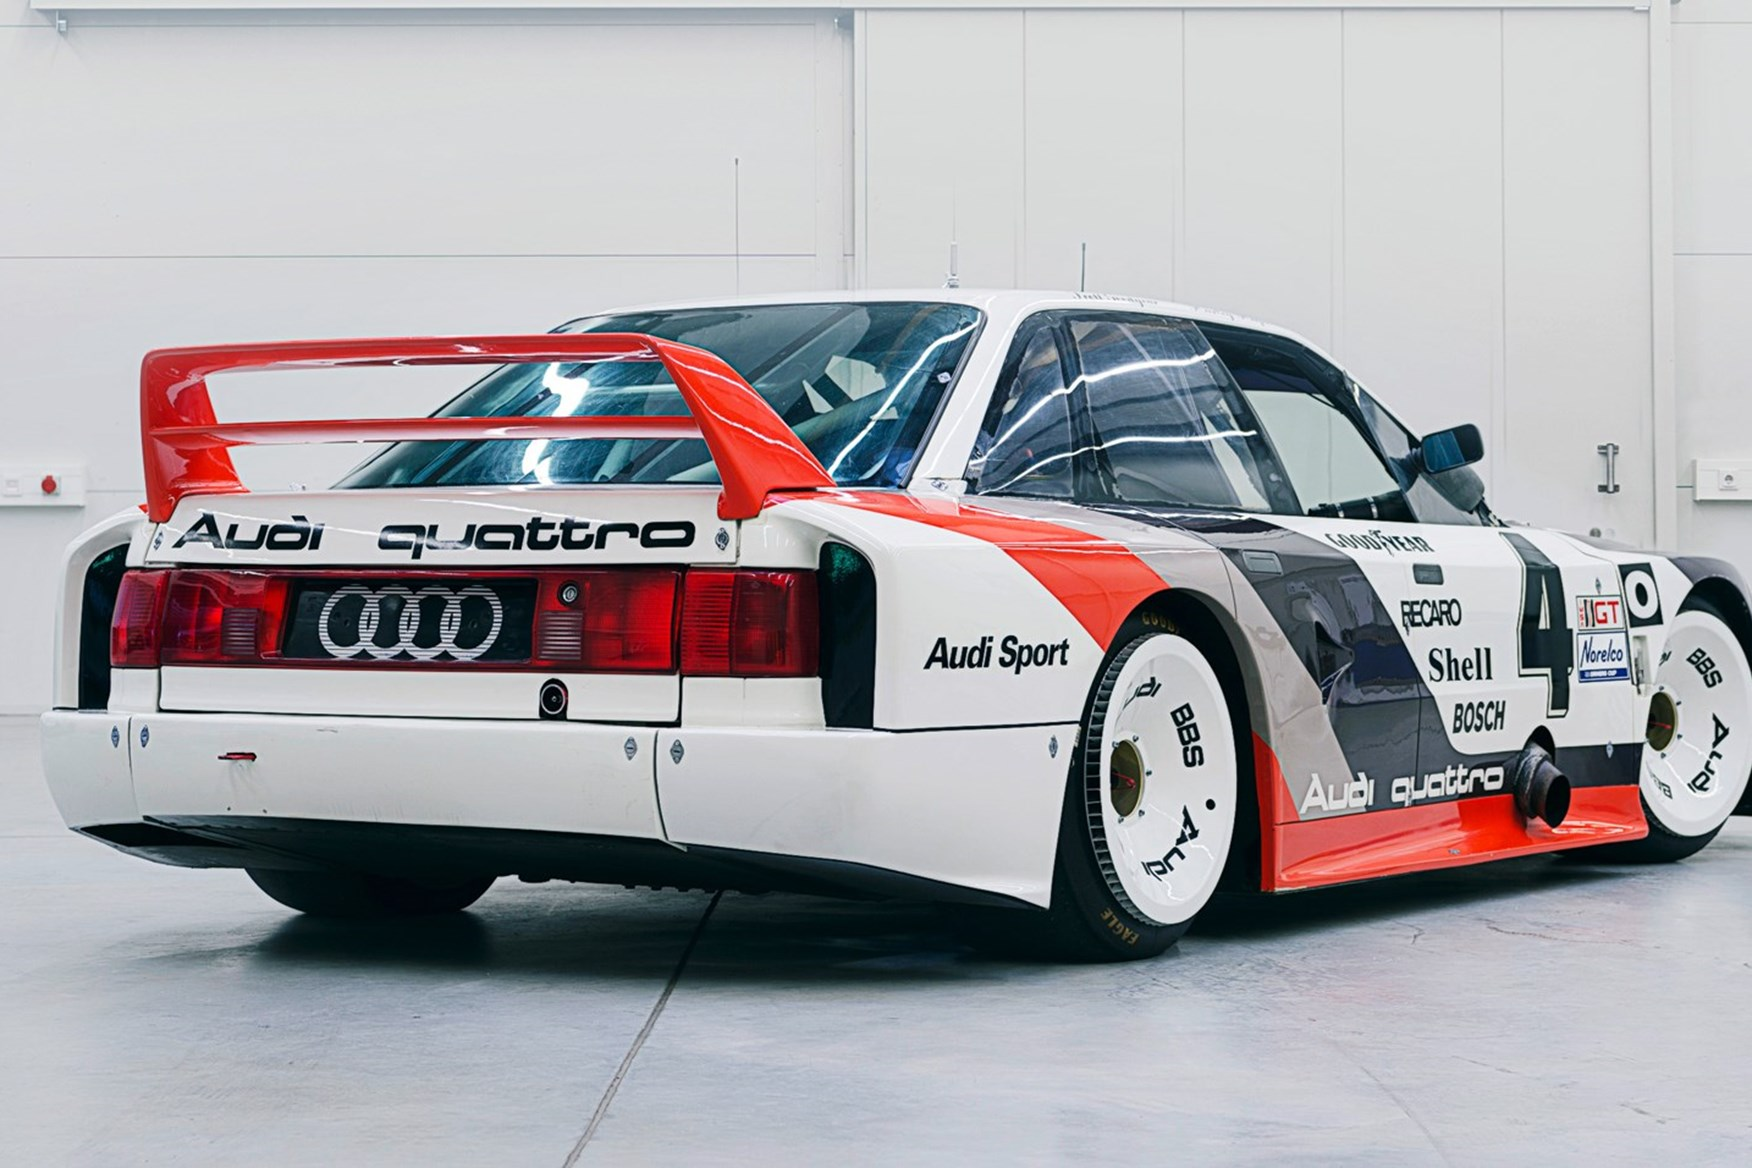 80s Car Wallpaper Audi Tt Clubsport Turbo Concept At Sema 2017 Pictures And